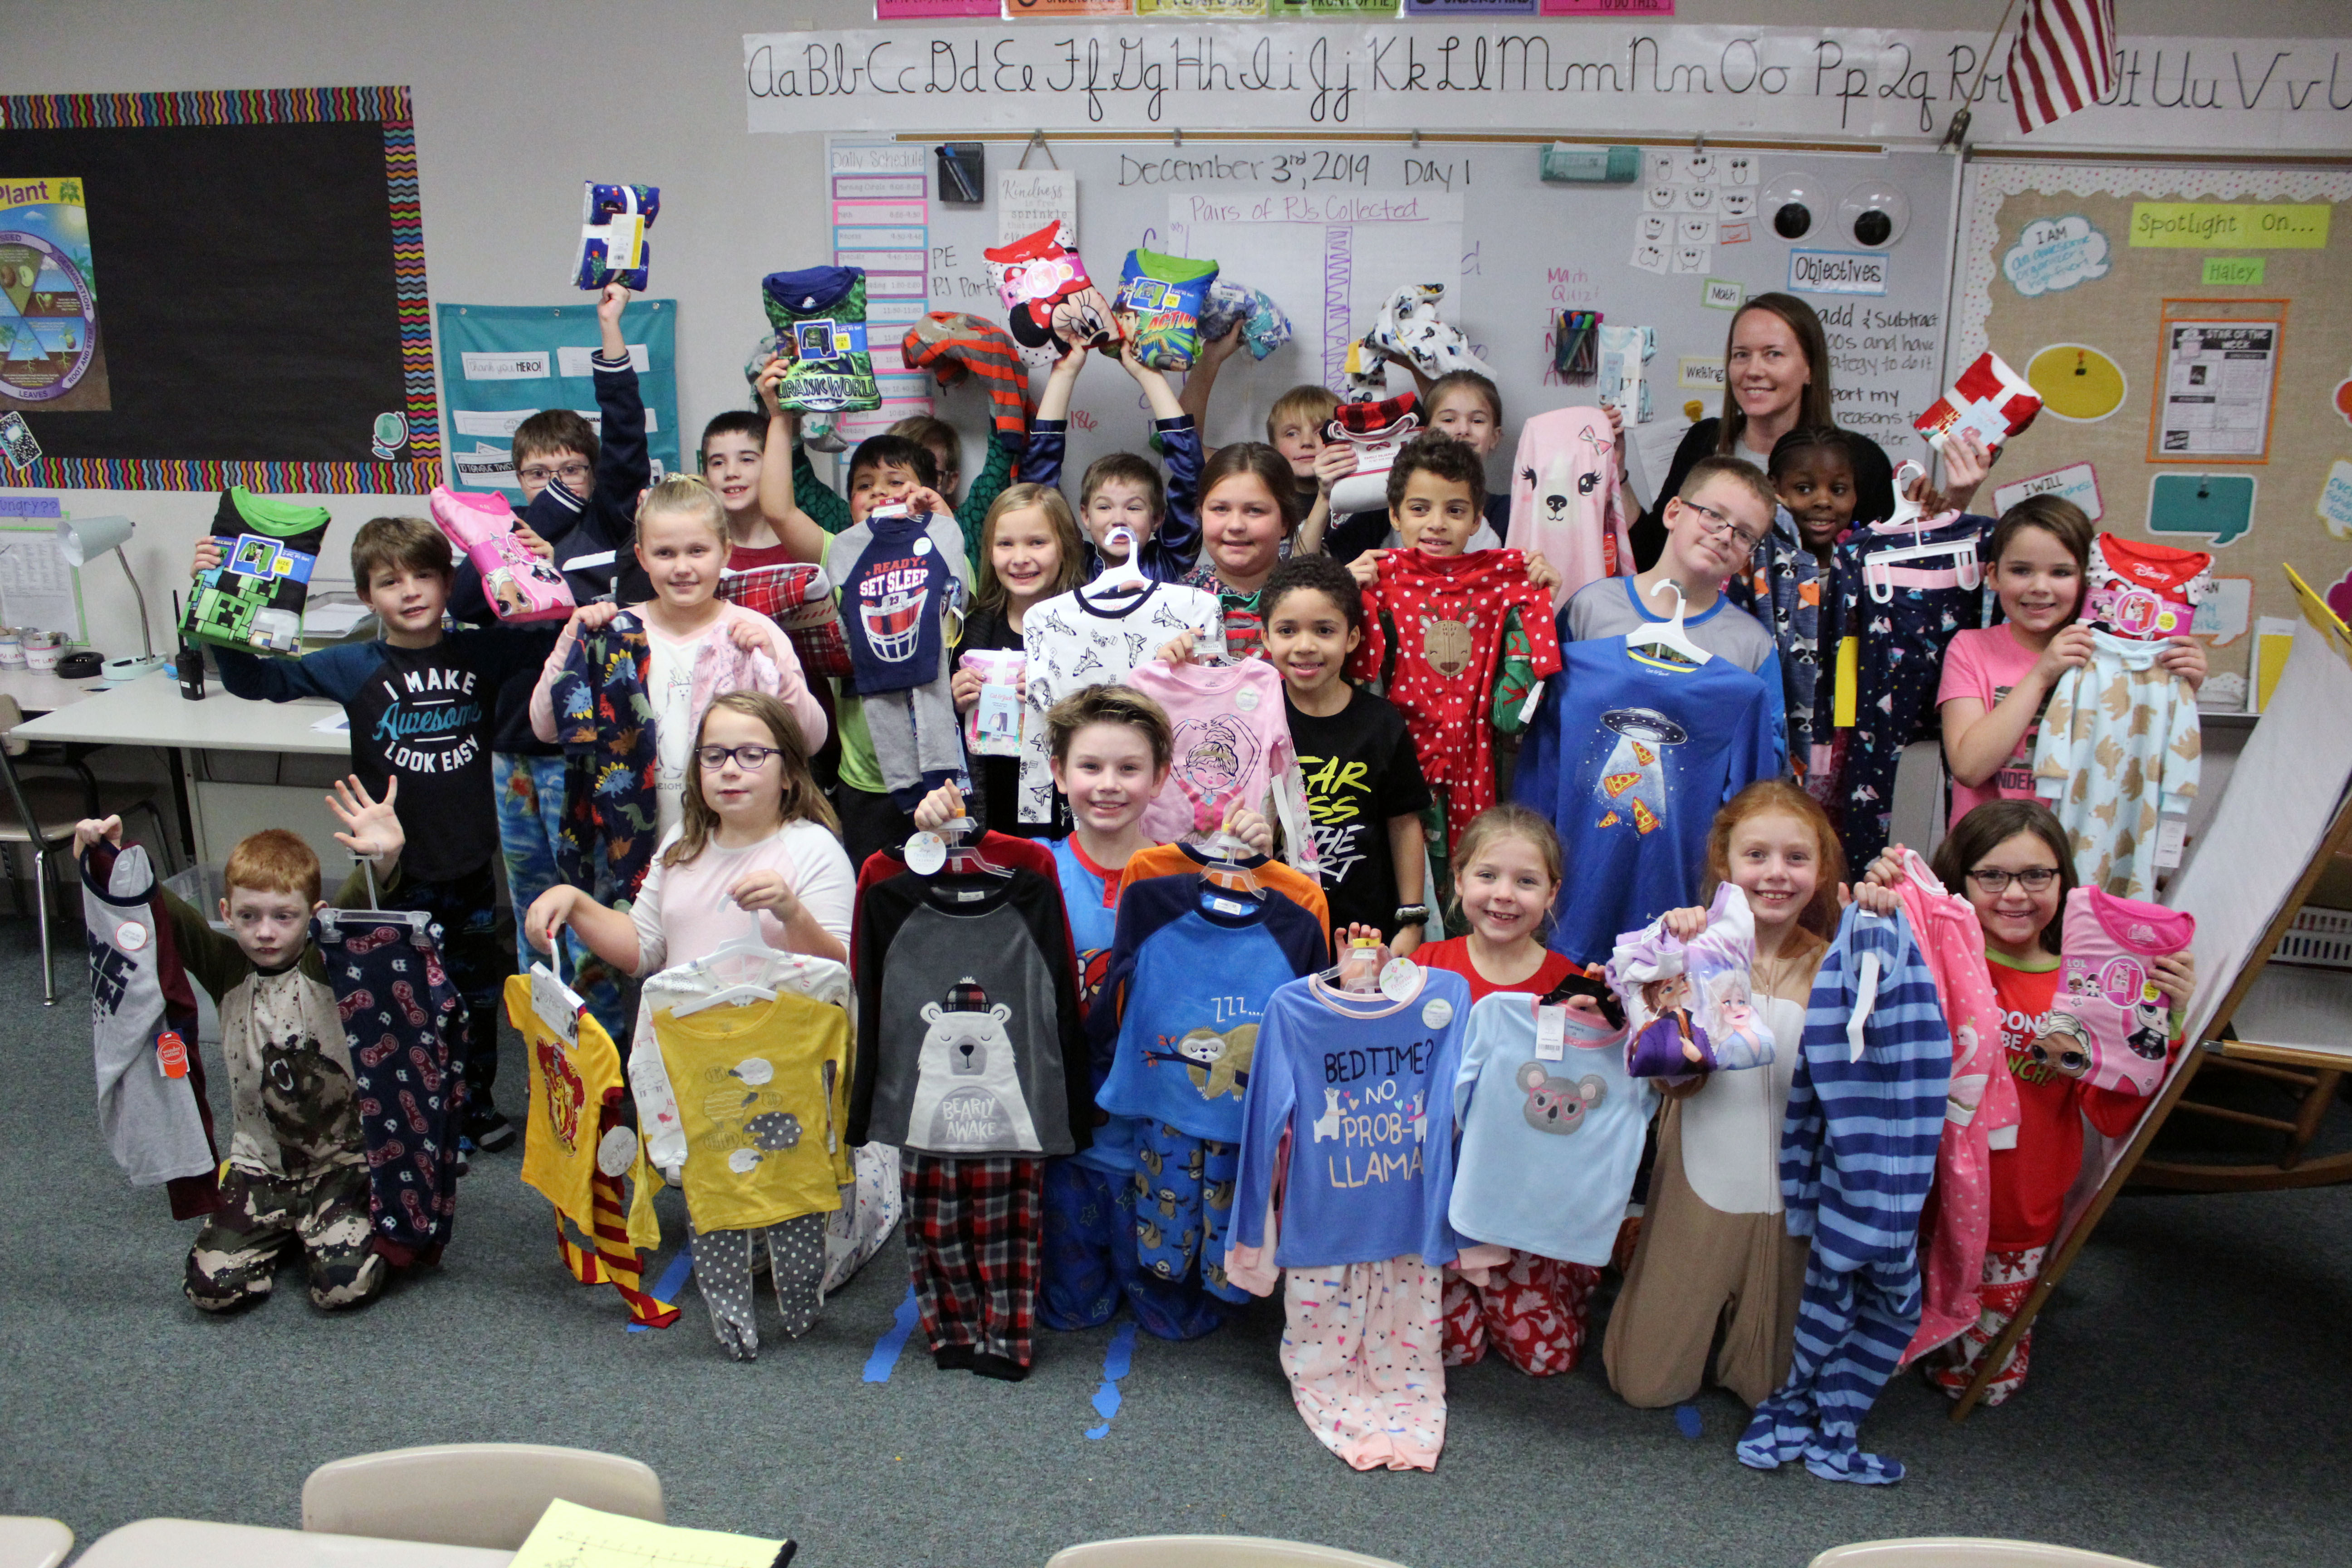 Hickory Hill Elementary 3rd grade class donates 43 pairs of pajamas for those in need